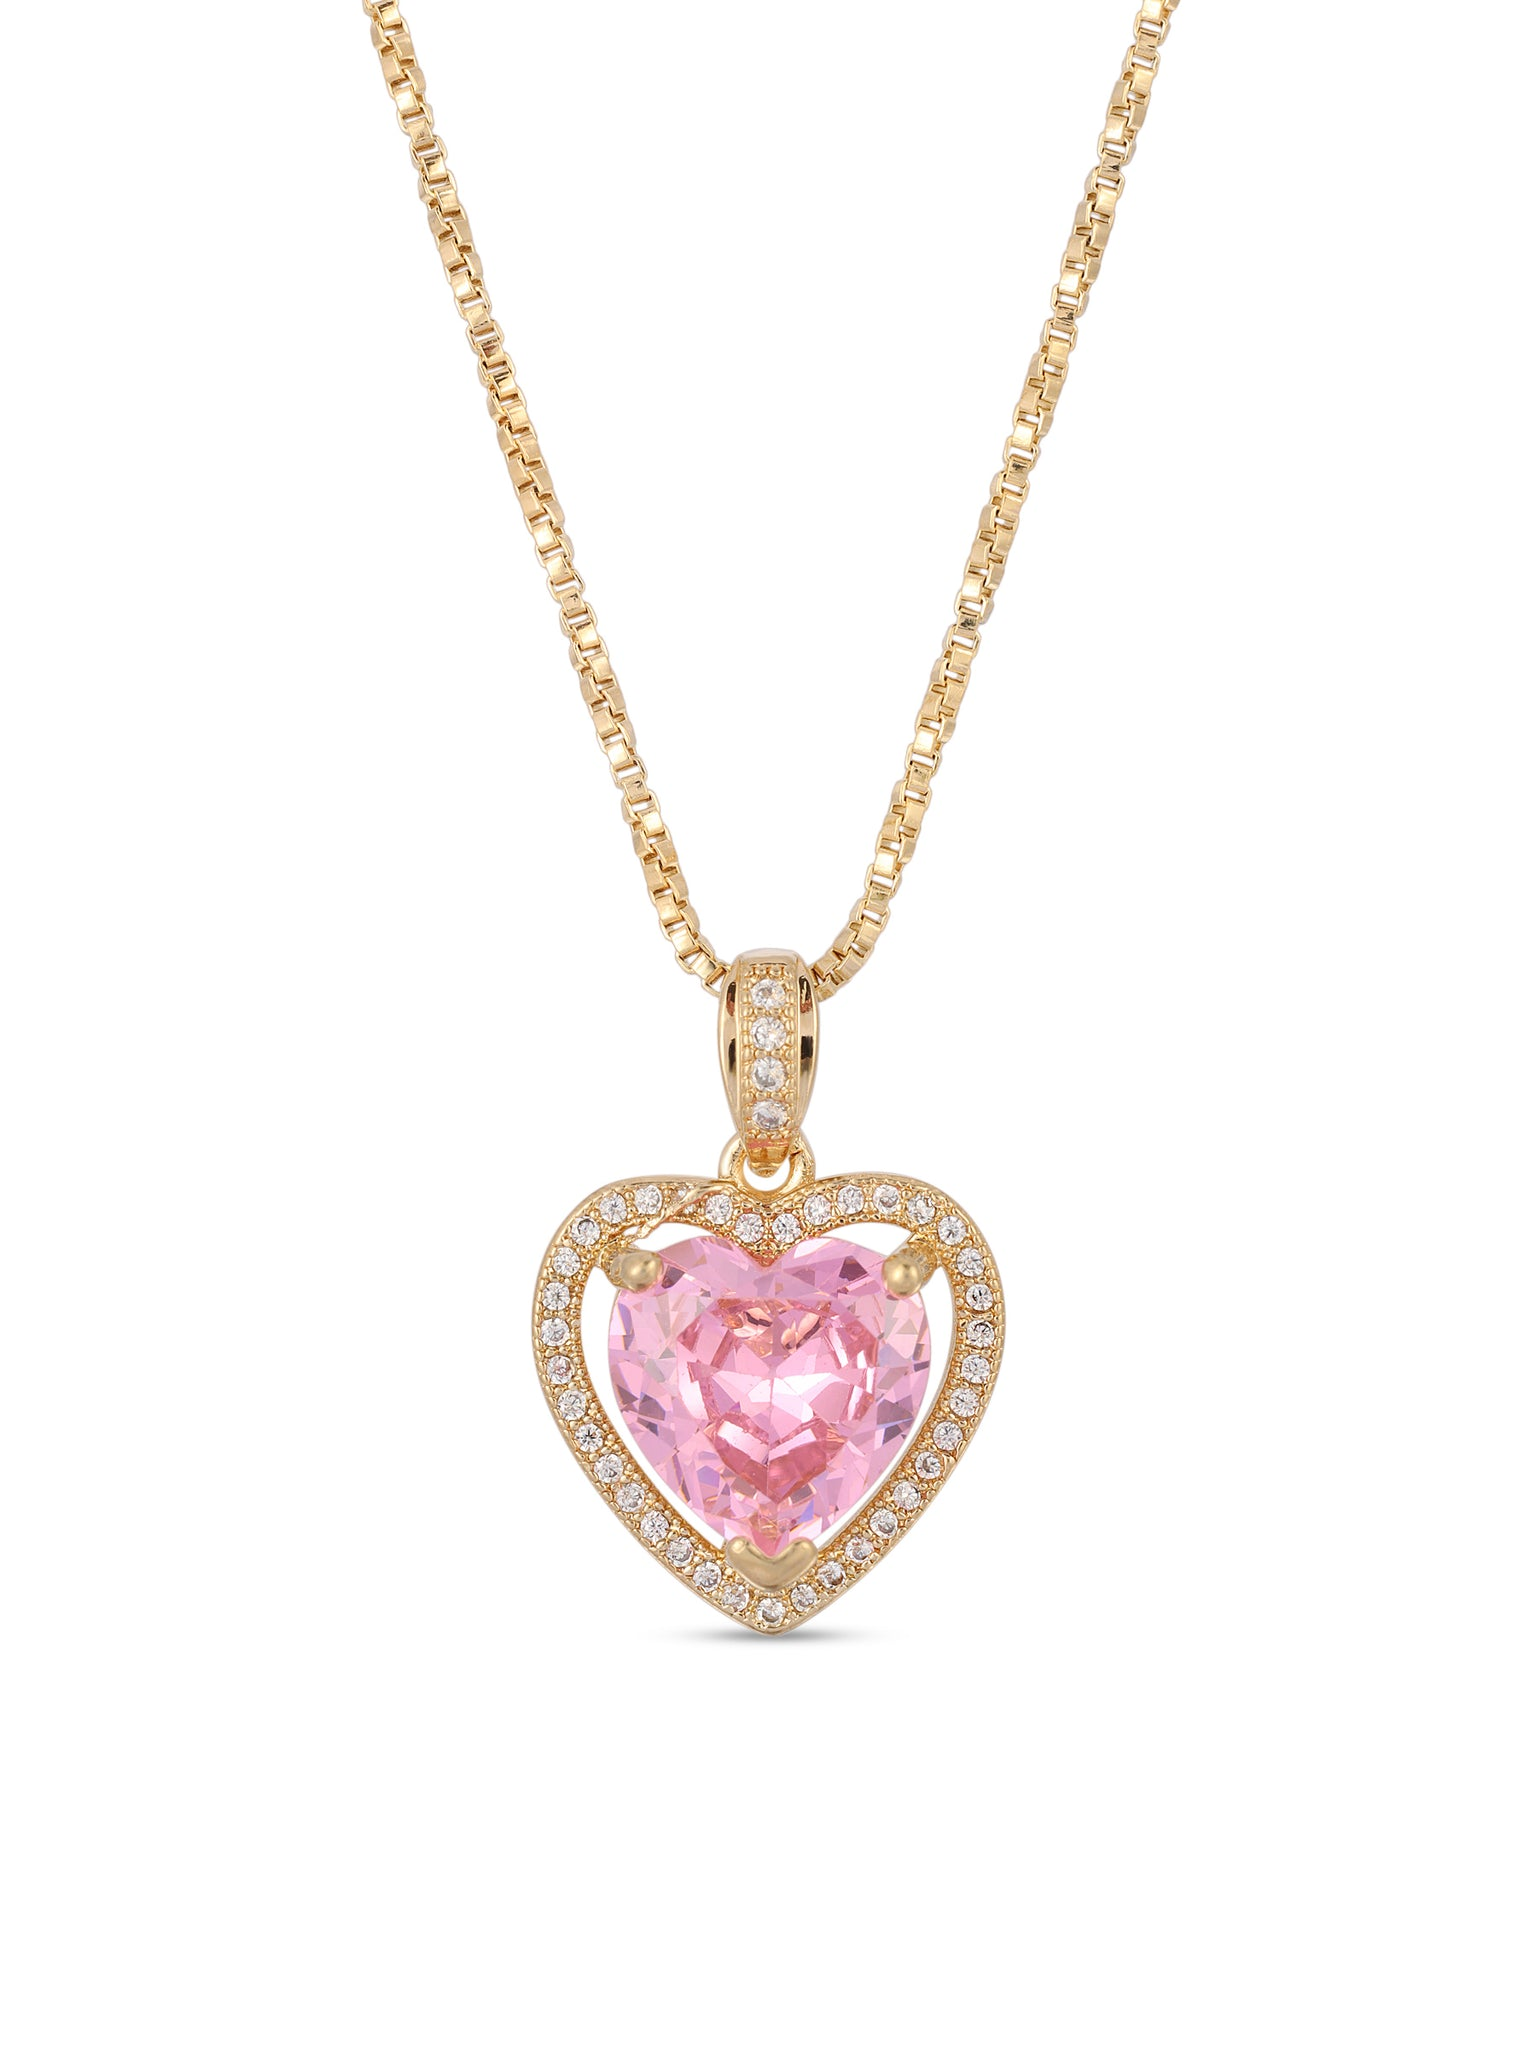 Necklaces The Mini Heart Necklace - Pink Vanessa Mooney